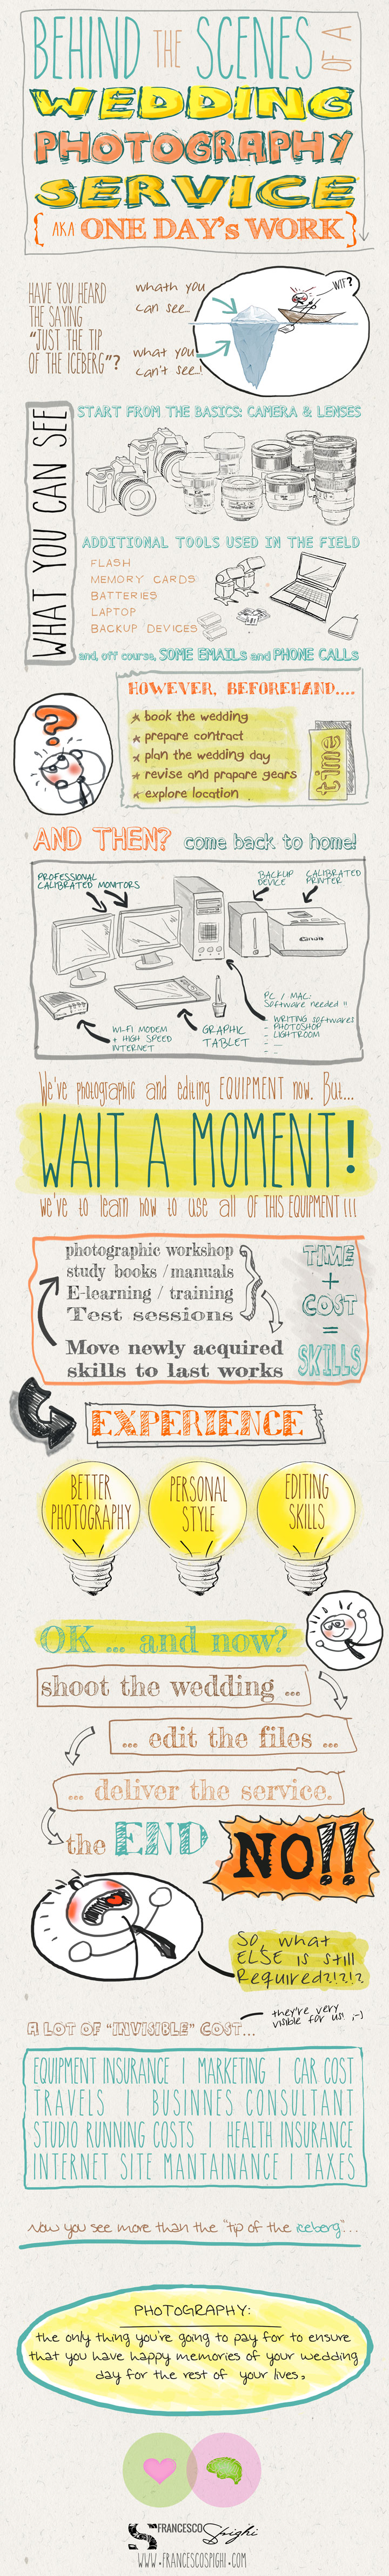 wedding-photography-hard-word-infographic